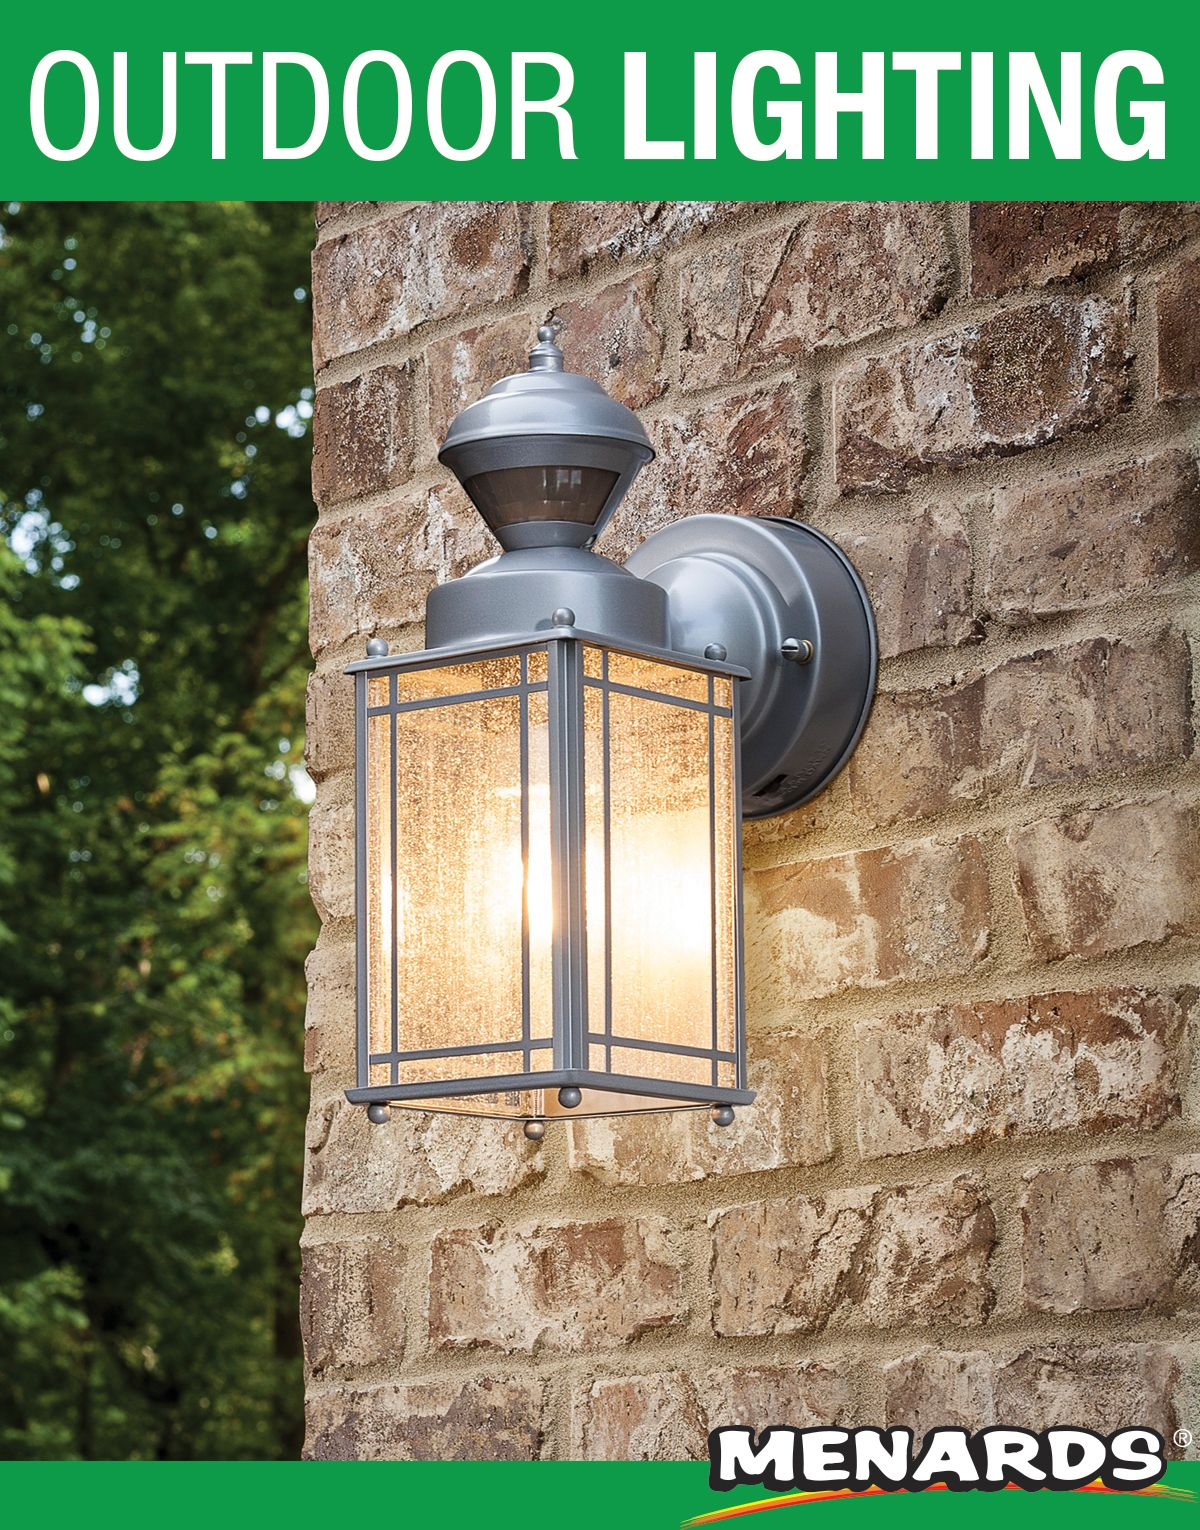 Add Style And Security To The Exterior Of Your Home With The